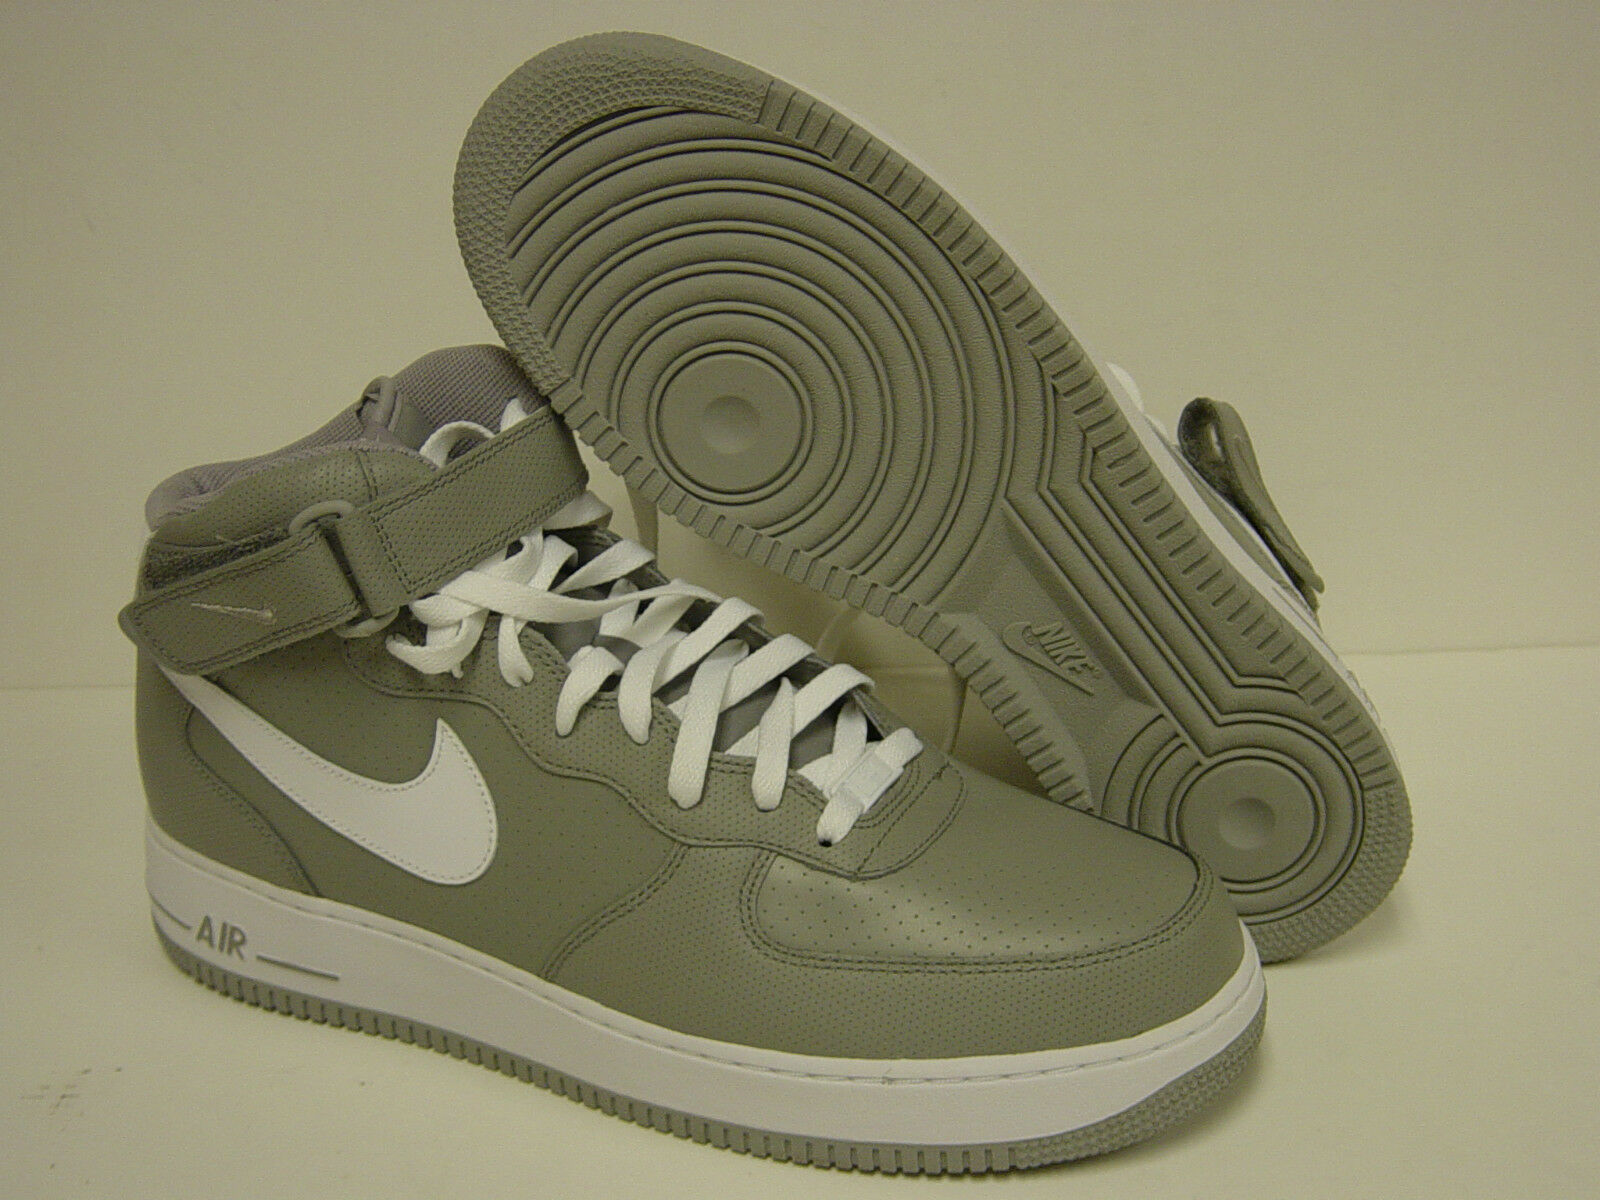 nouveau   nike air force force air 1 mi - 2007 315123 008 perf Gris  chaussures chaussures 173544